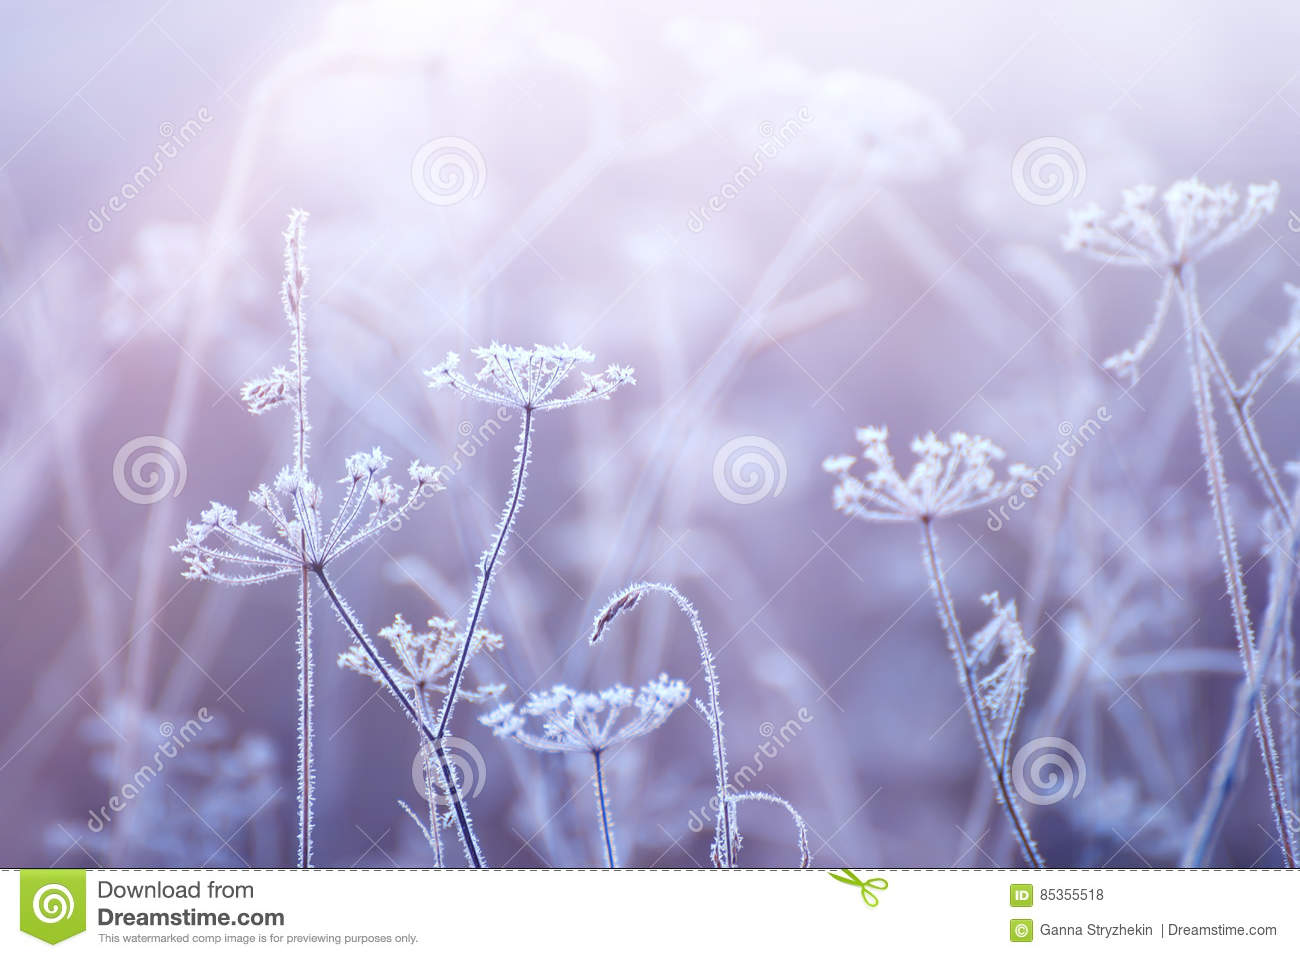 Flowers in the frost with a gentle morning light